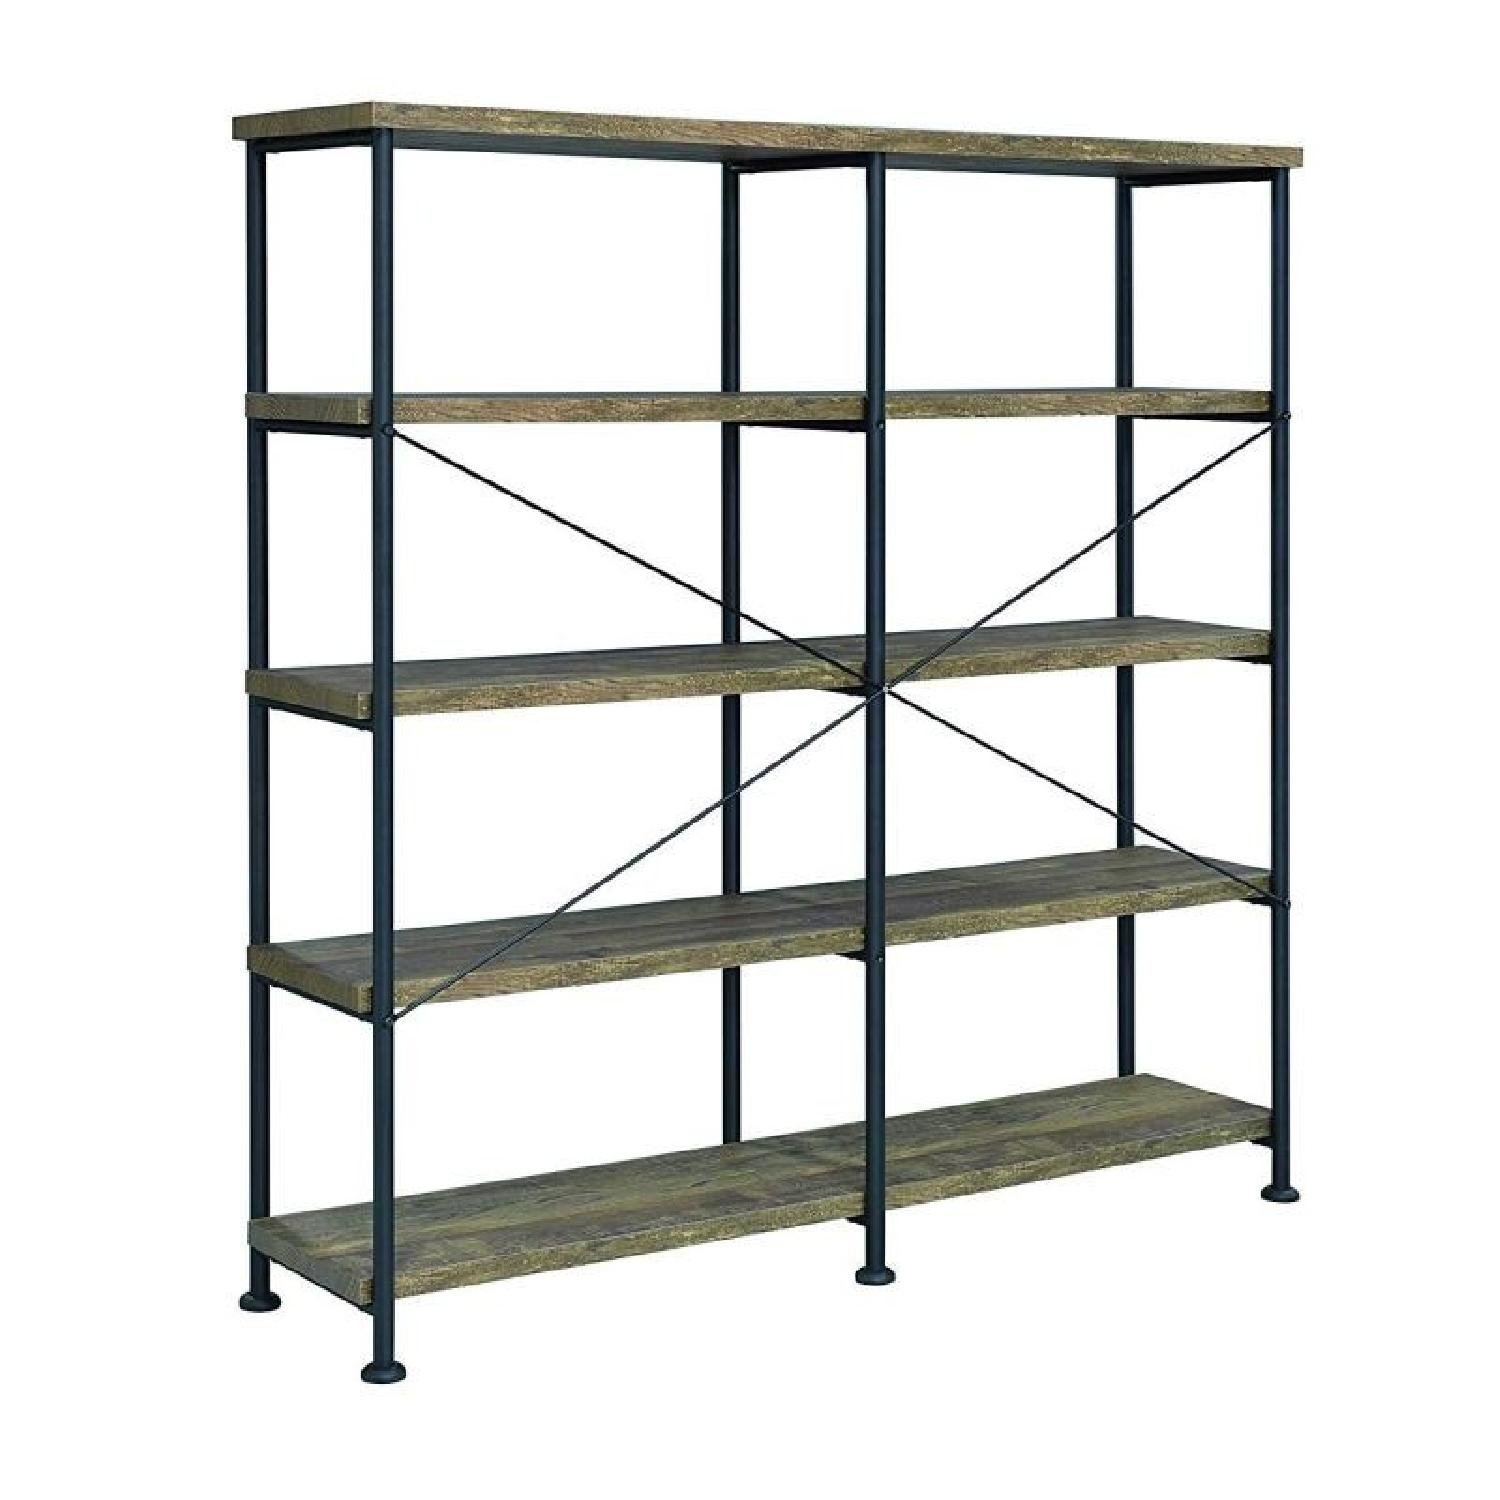 Rustic Oak & Black Bookcase w/ 4 Shelves - image-4